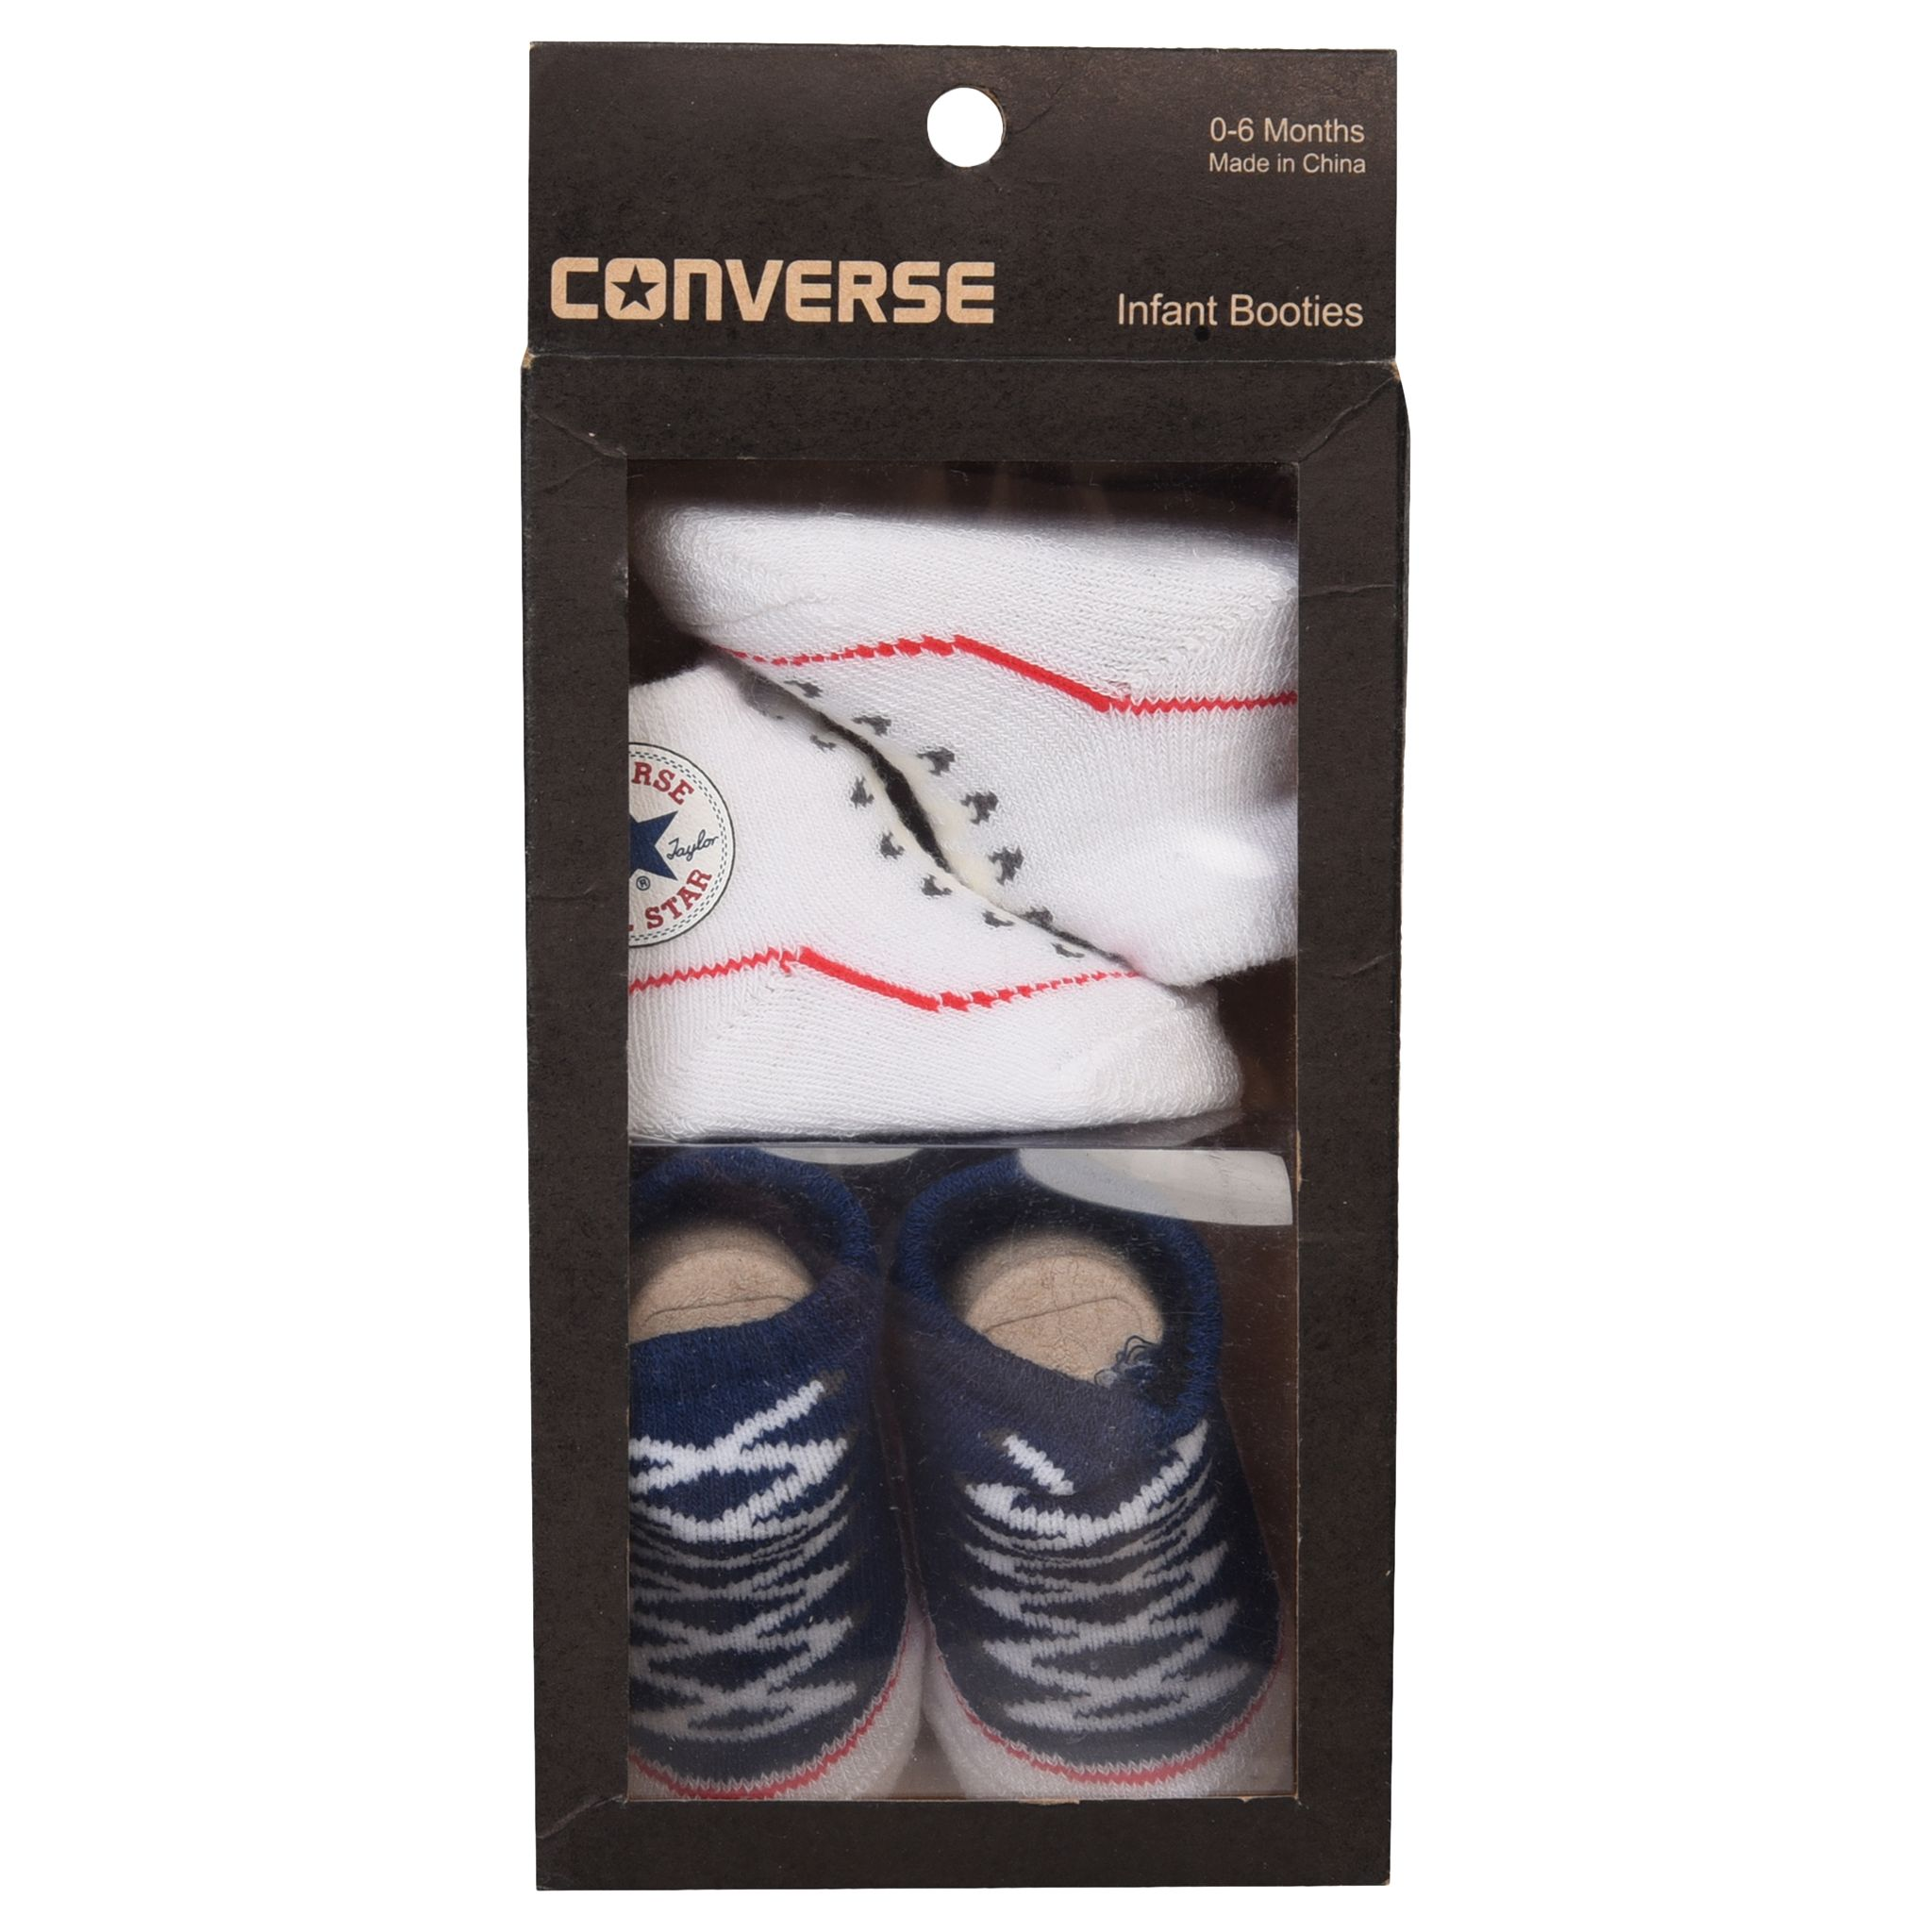 01bcdc75a92 Converse Baby Booties